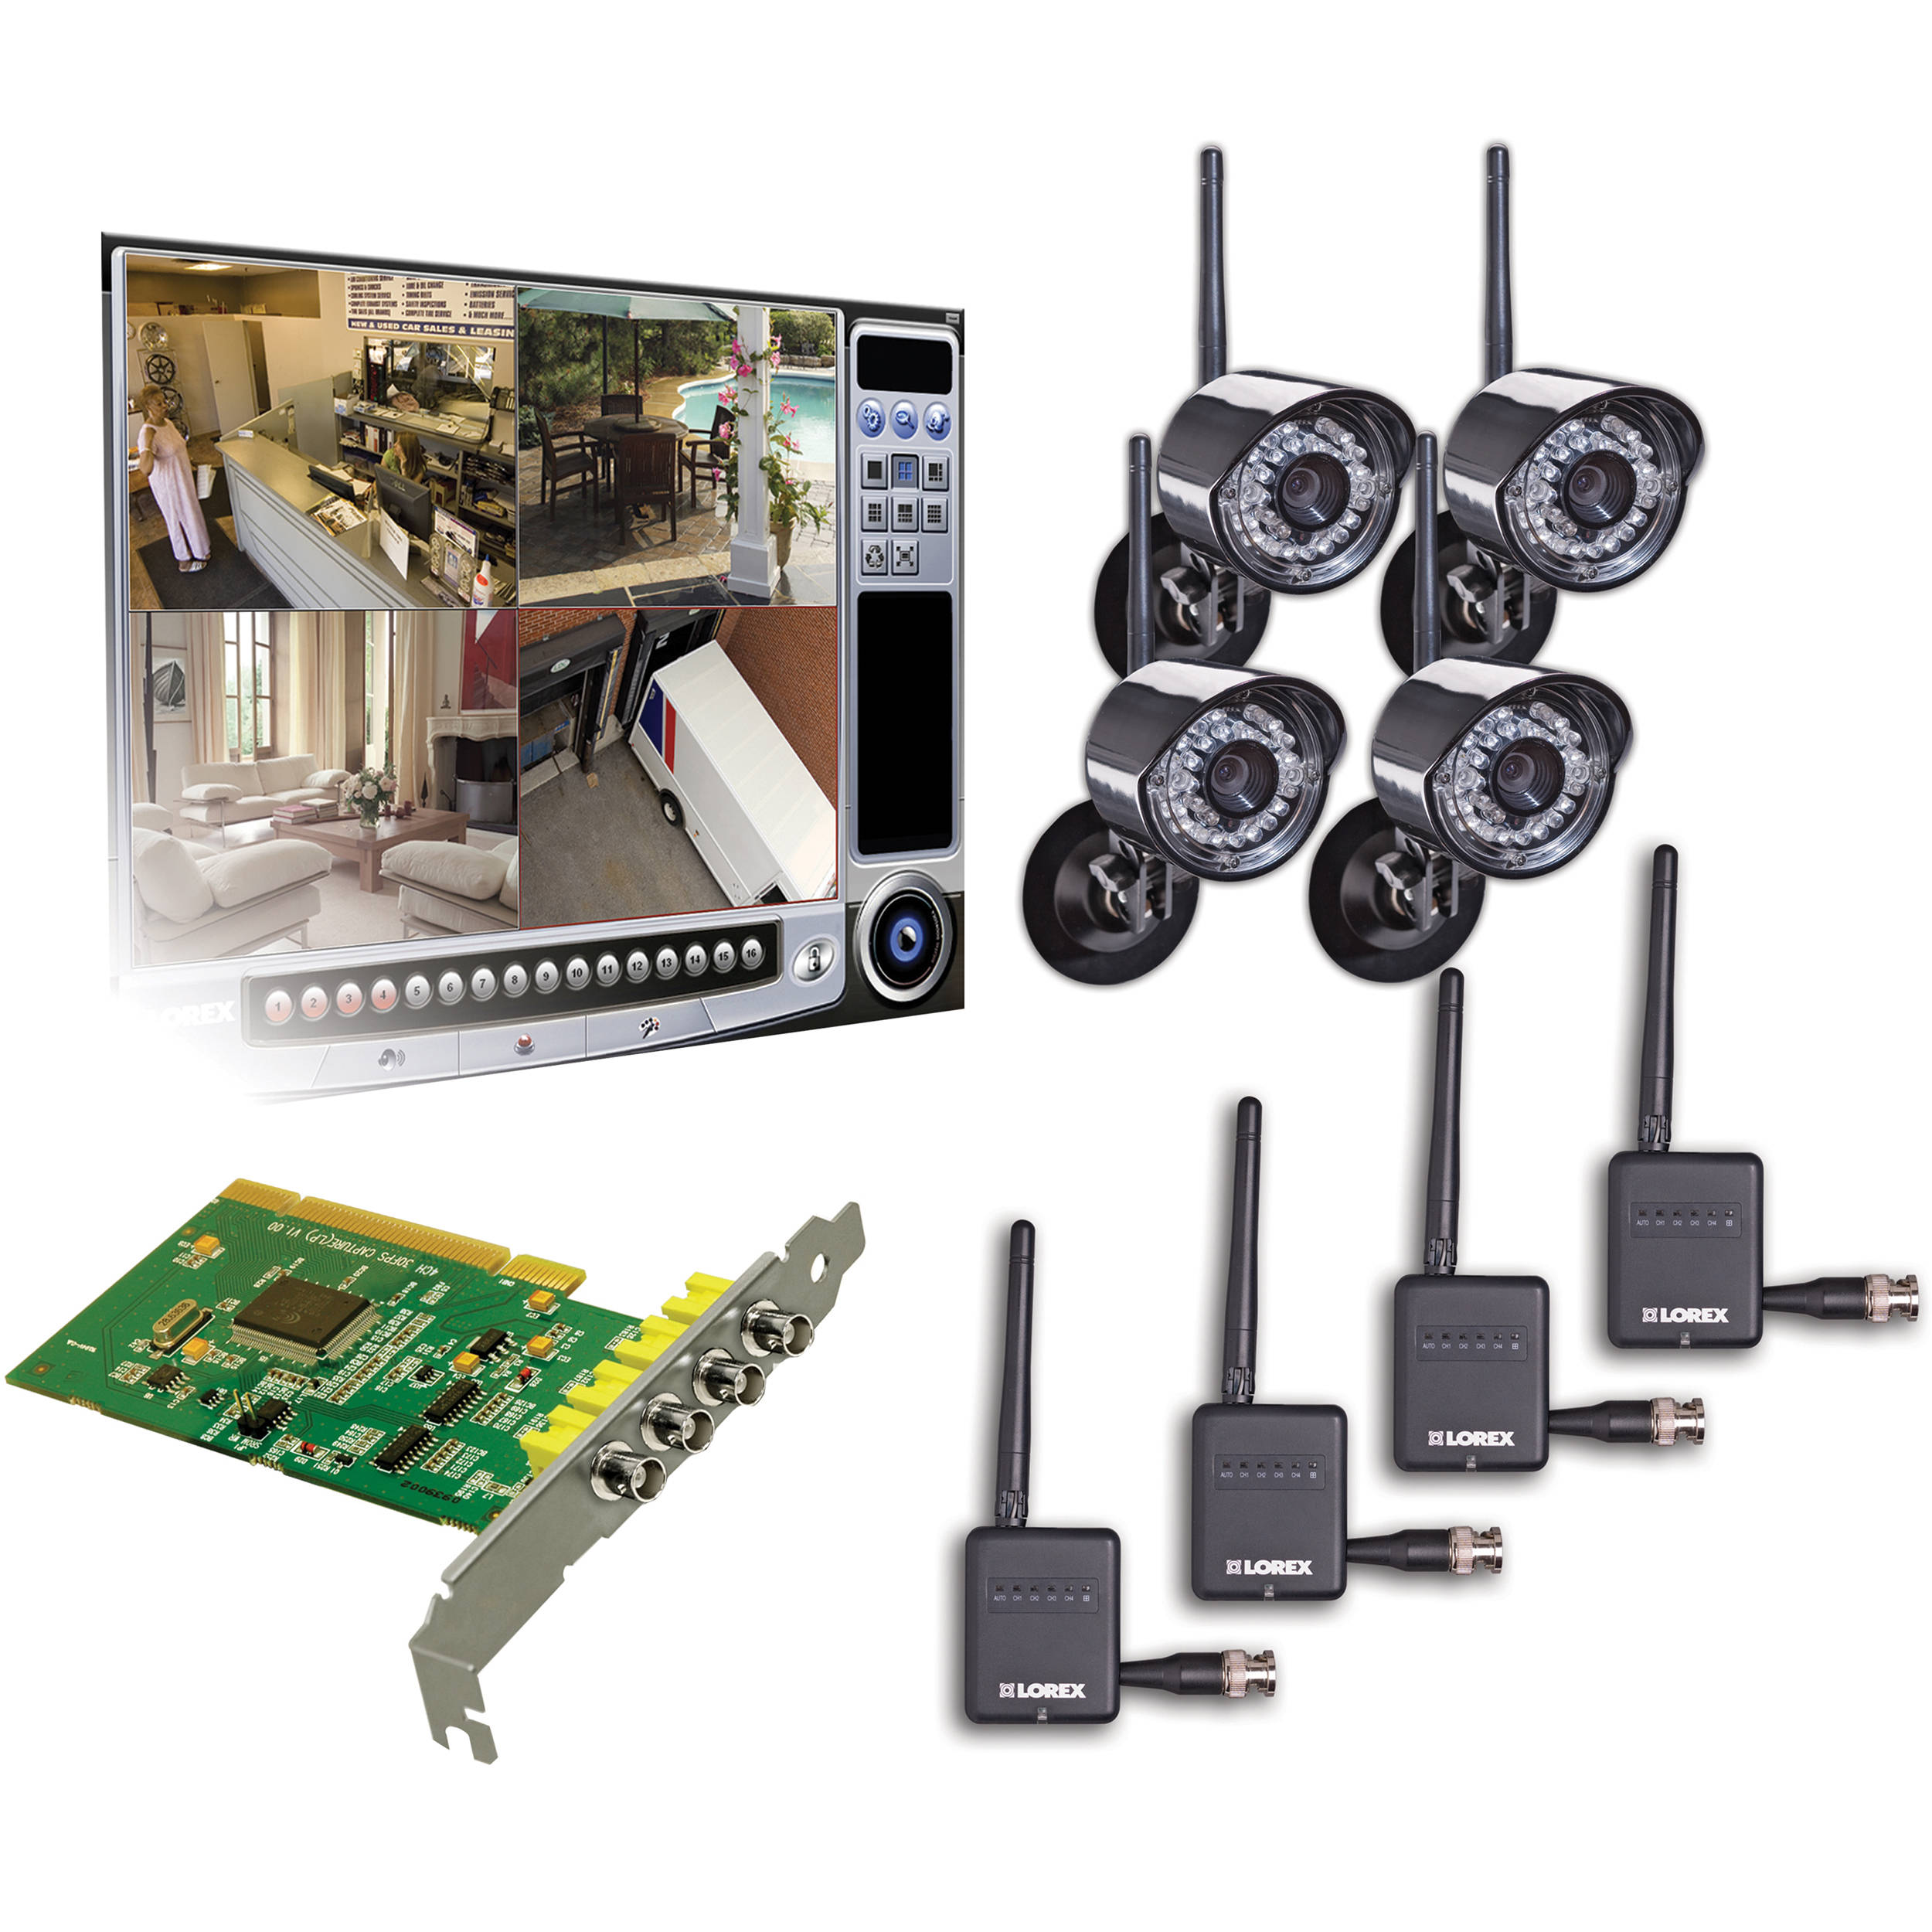 You'll find high quality on the best surveillance system to help you keep a watchful eye on your property and possessions, for home, for business. This website help you alway secure and security with top rated security camera systems on the market.